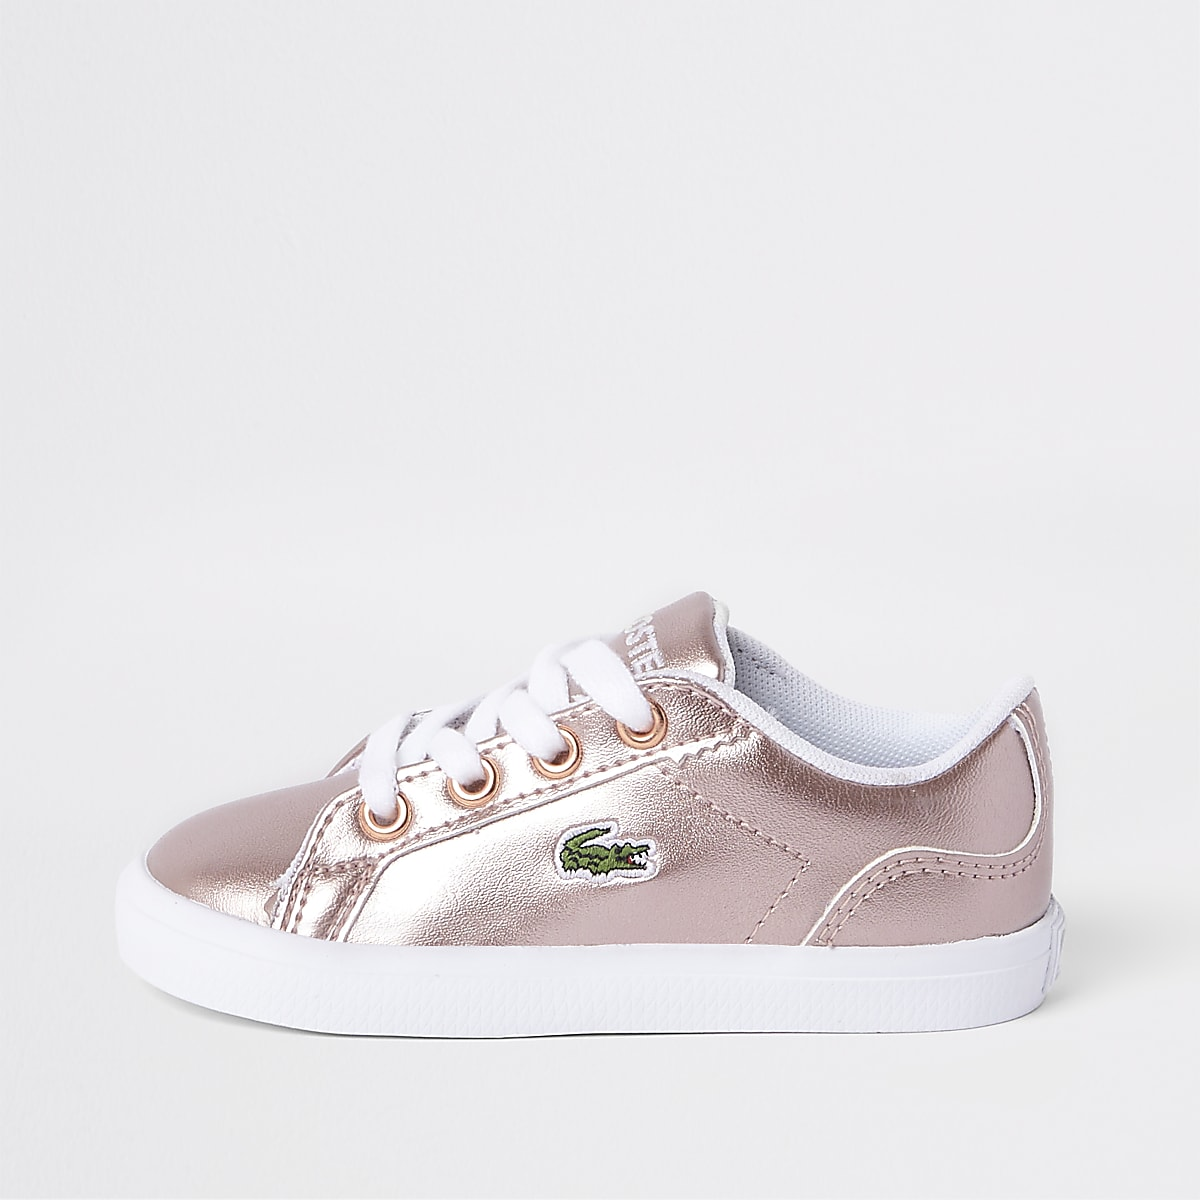 6c8d8697c7c19a Mini girls Lacoste pink lace up trainers - Baby Girls Trainers - Baby Girls  Shoes   Boots - Mini Girls - girls